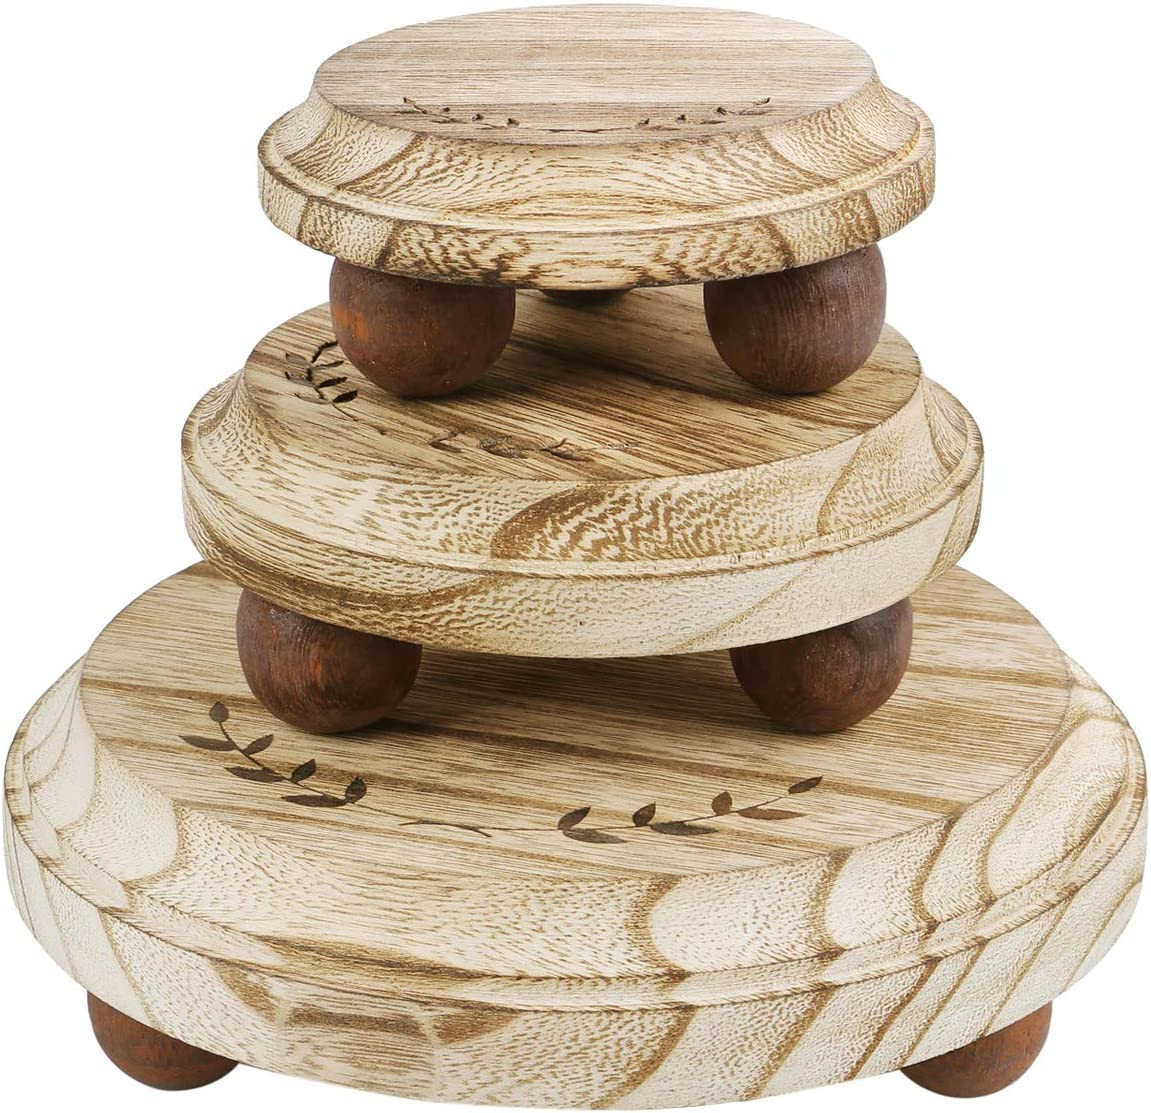 """Ikee Design 3Pcs Set Wood Stackable Display Riser Stands, Wood Pedestal Riser for Cake Party Food Collection Display, Showcase, Store and Home Décor, Height: 2""""H; 2""""H; 2 3/4""""H"""